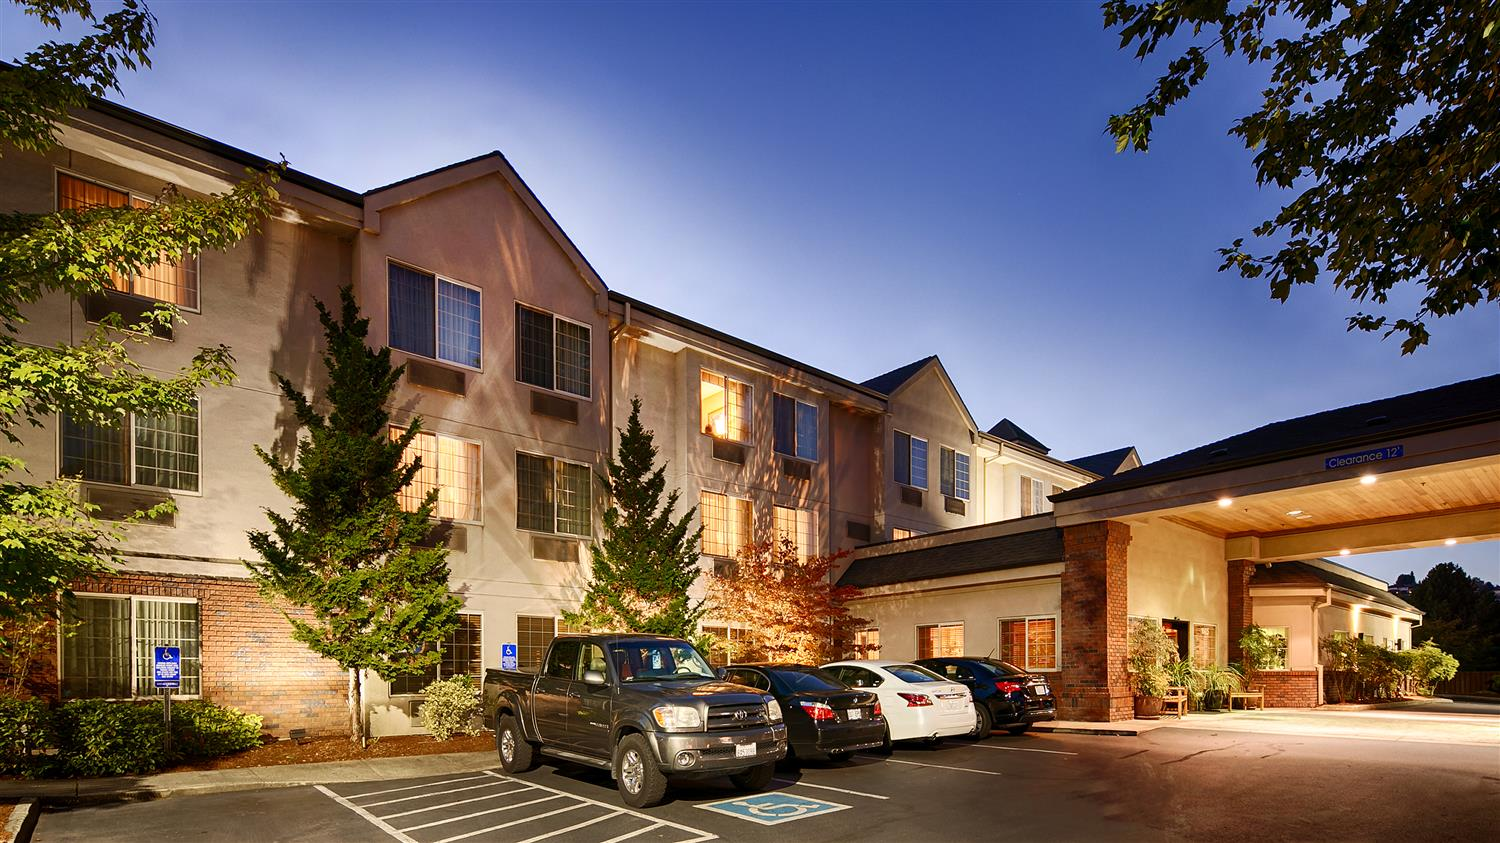 Best Western Plus Northwind Inn & Suites King City, OR - See Discounts